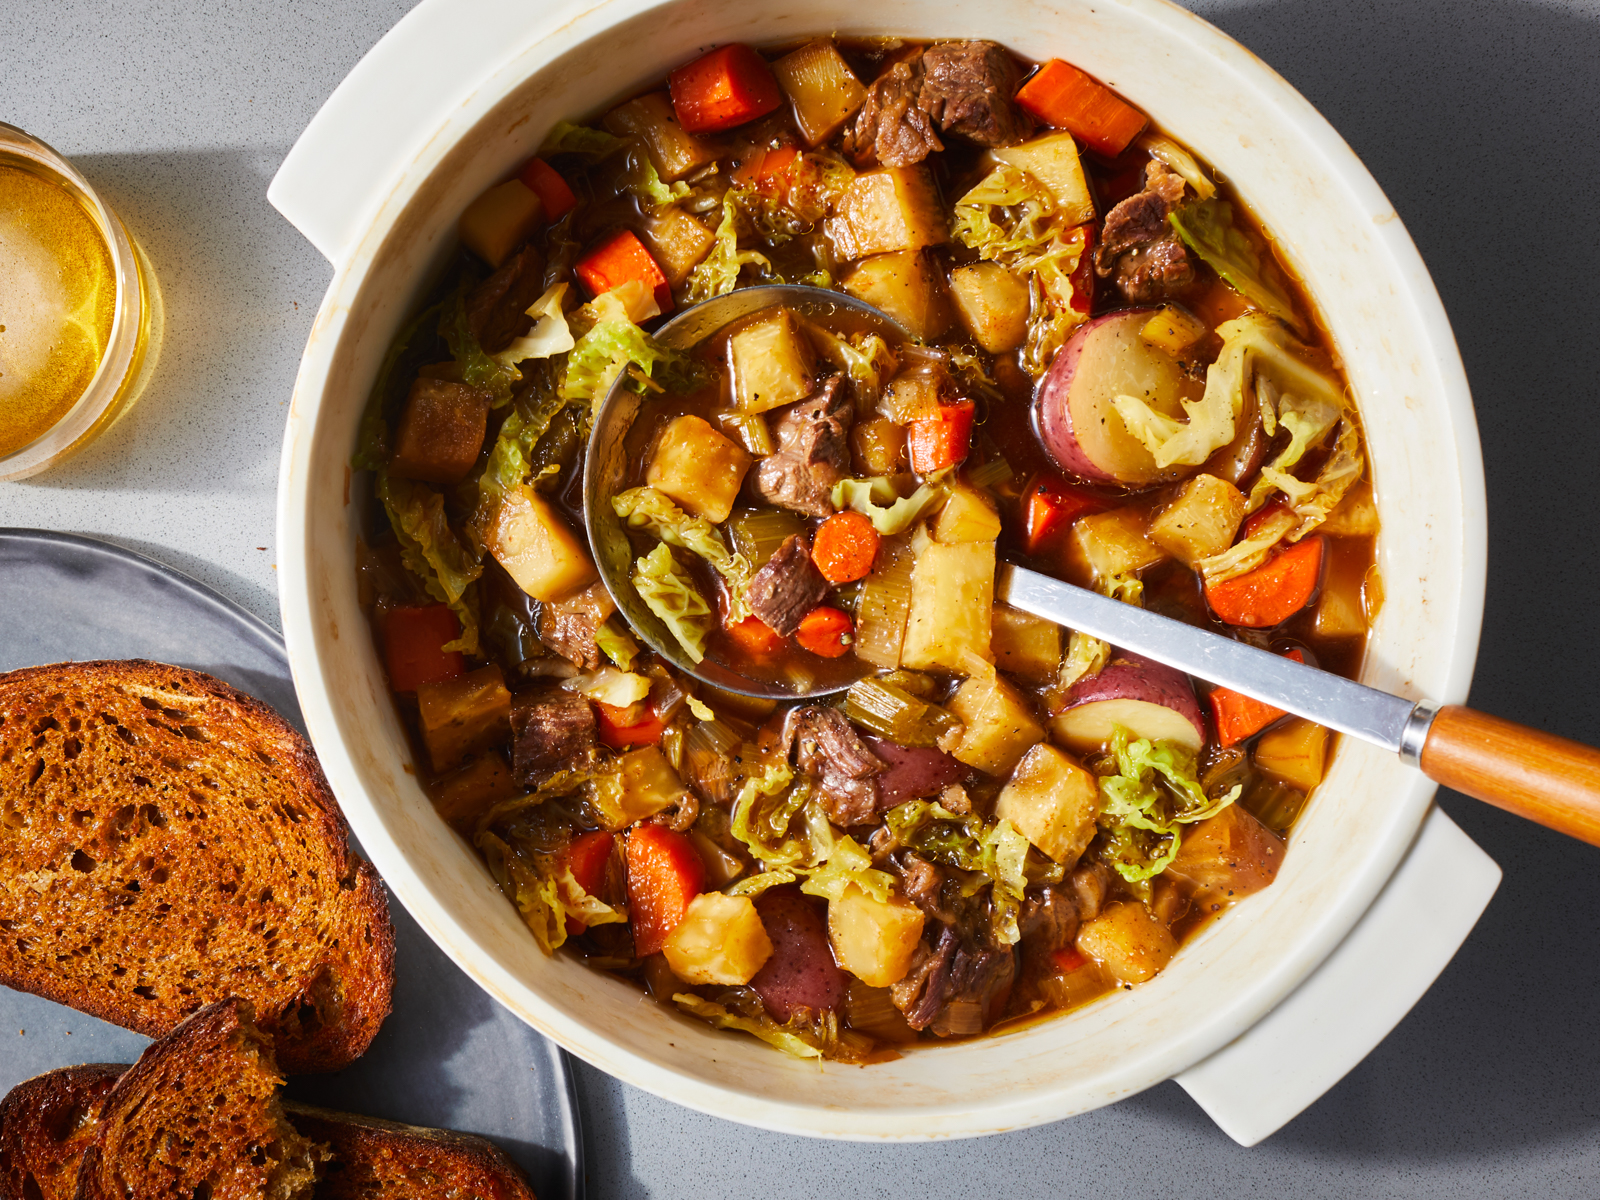 Pretty much everything goes into one pot in this hearty stew recipe; a few hours later a meal ideal for the depths of winter emerges.